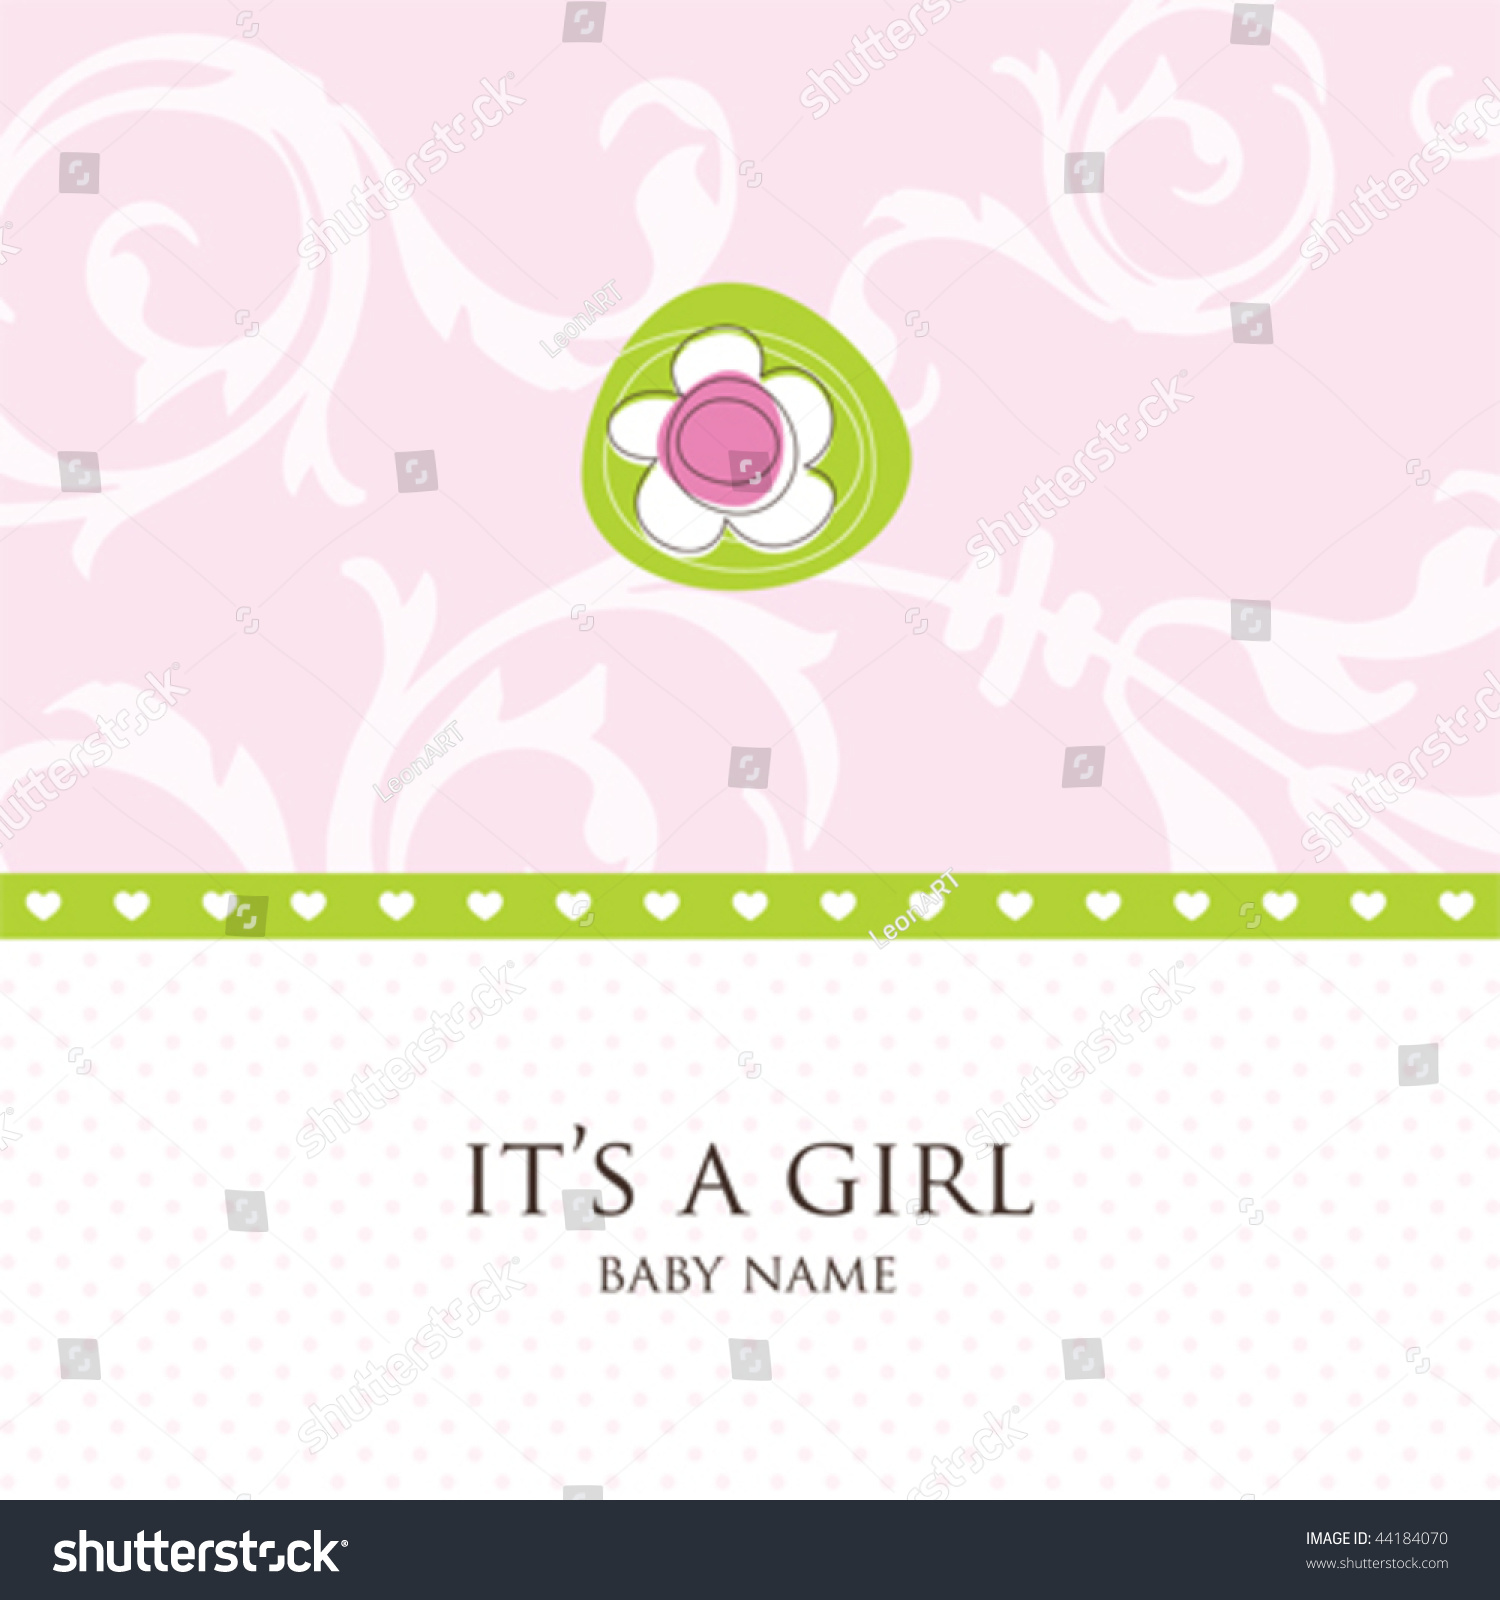 Baby girl arrival greeting card stylish stock vector royalty free baby girl arrival greeting card with stylish floral background simple unique design for greeting card m4hsunfo